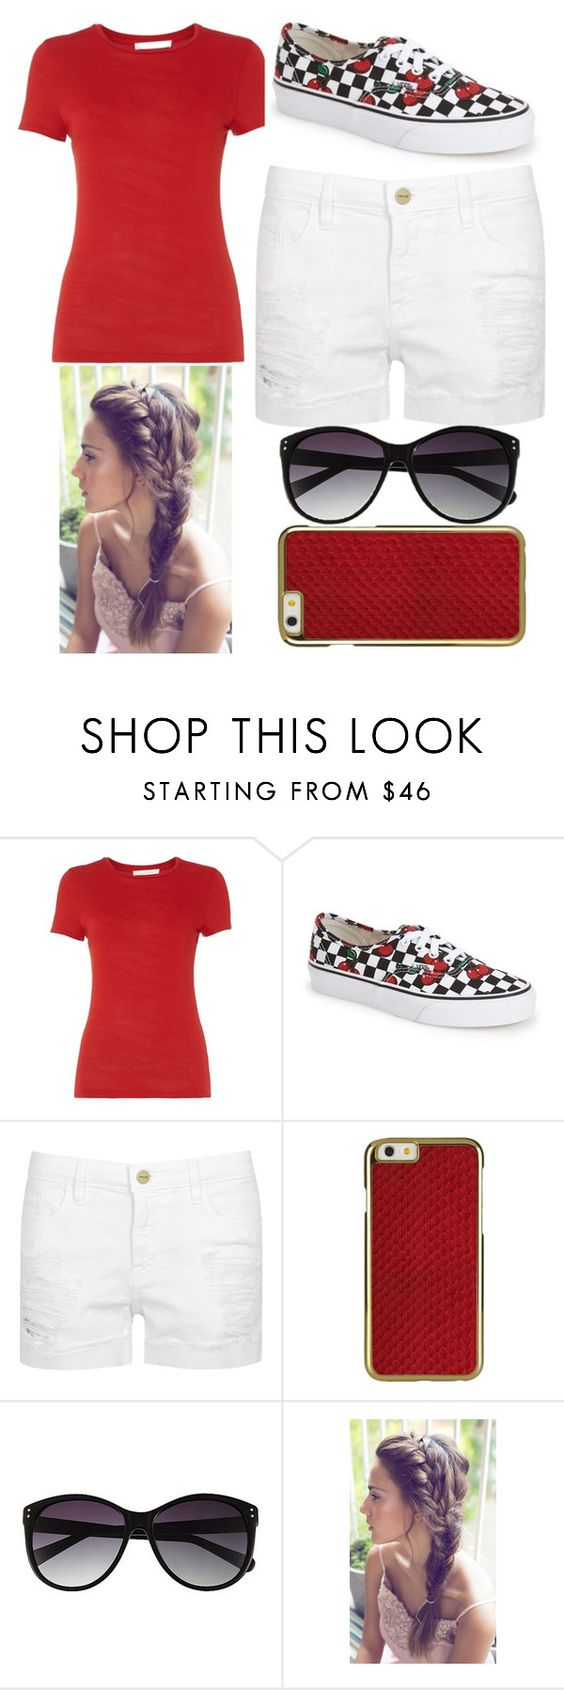 """#Red"" by swimminwithsharks ❤ liked on Polyvore featuring HUGO, Vans, Frame Denim and Vince Camuto"